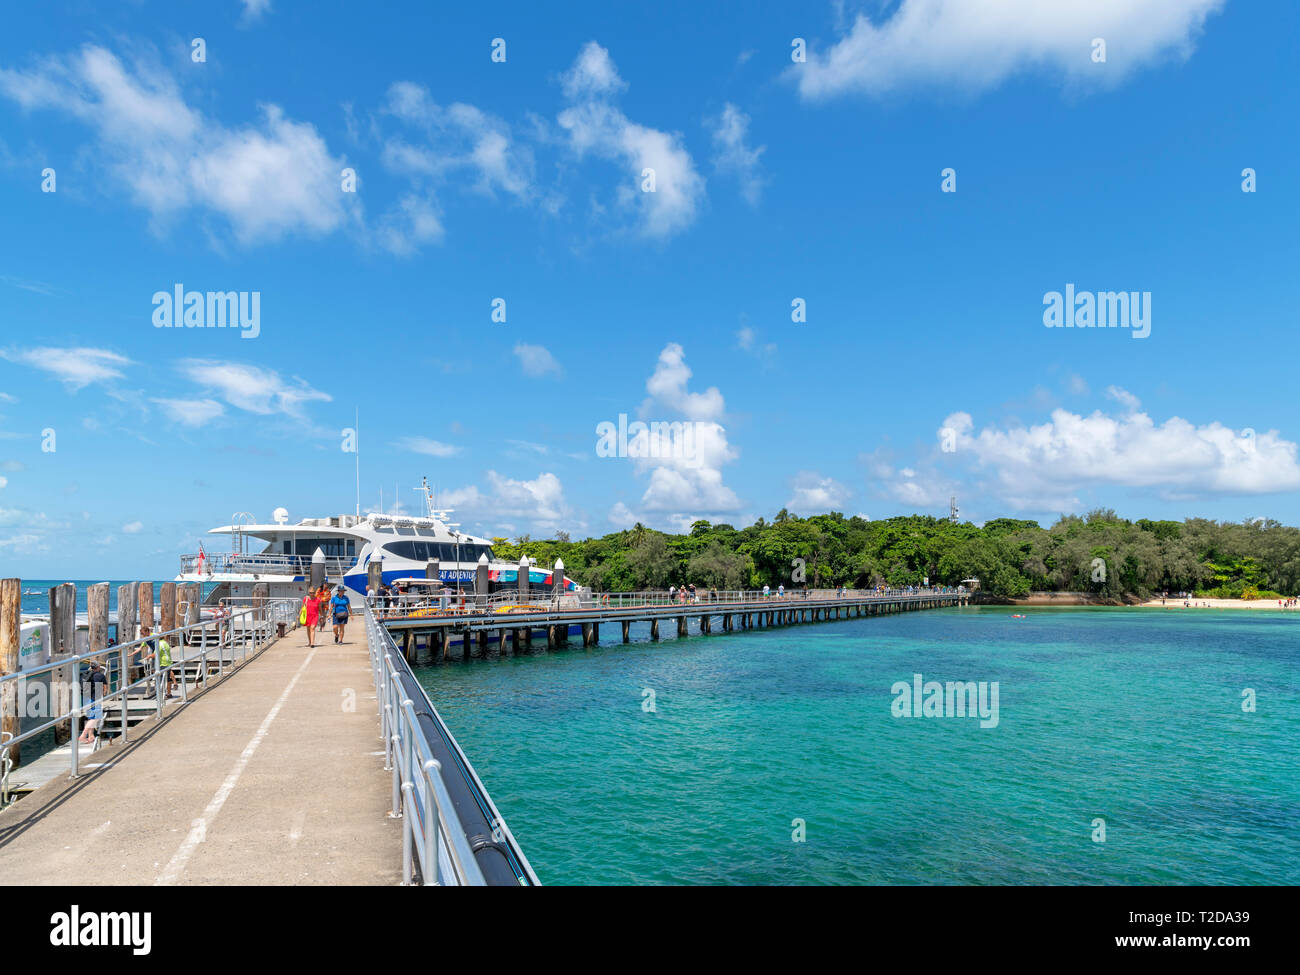 Great Barrier Reef, Australia. Boat jetty on Green Island, a coral cay in the Great Barrier Reef Marine Park, Queensland, Australia Stock Photo